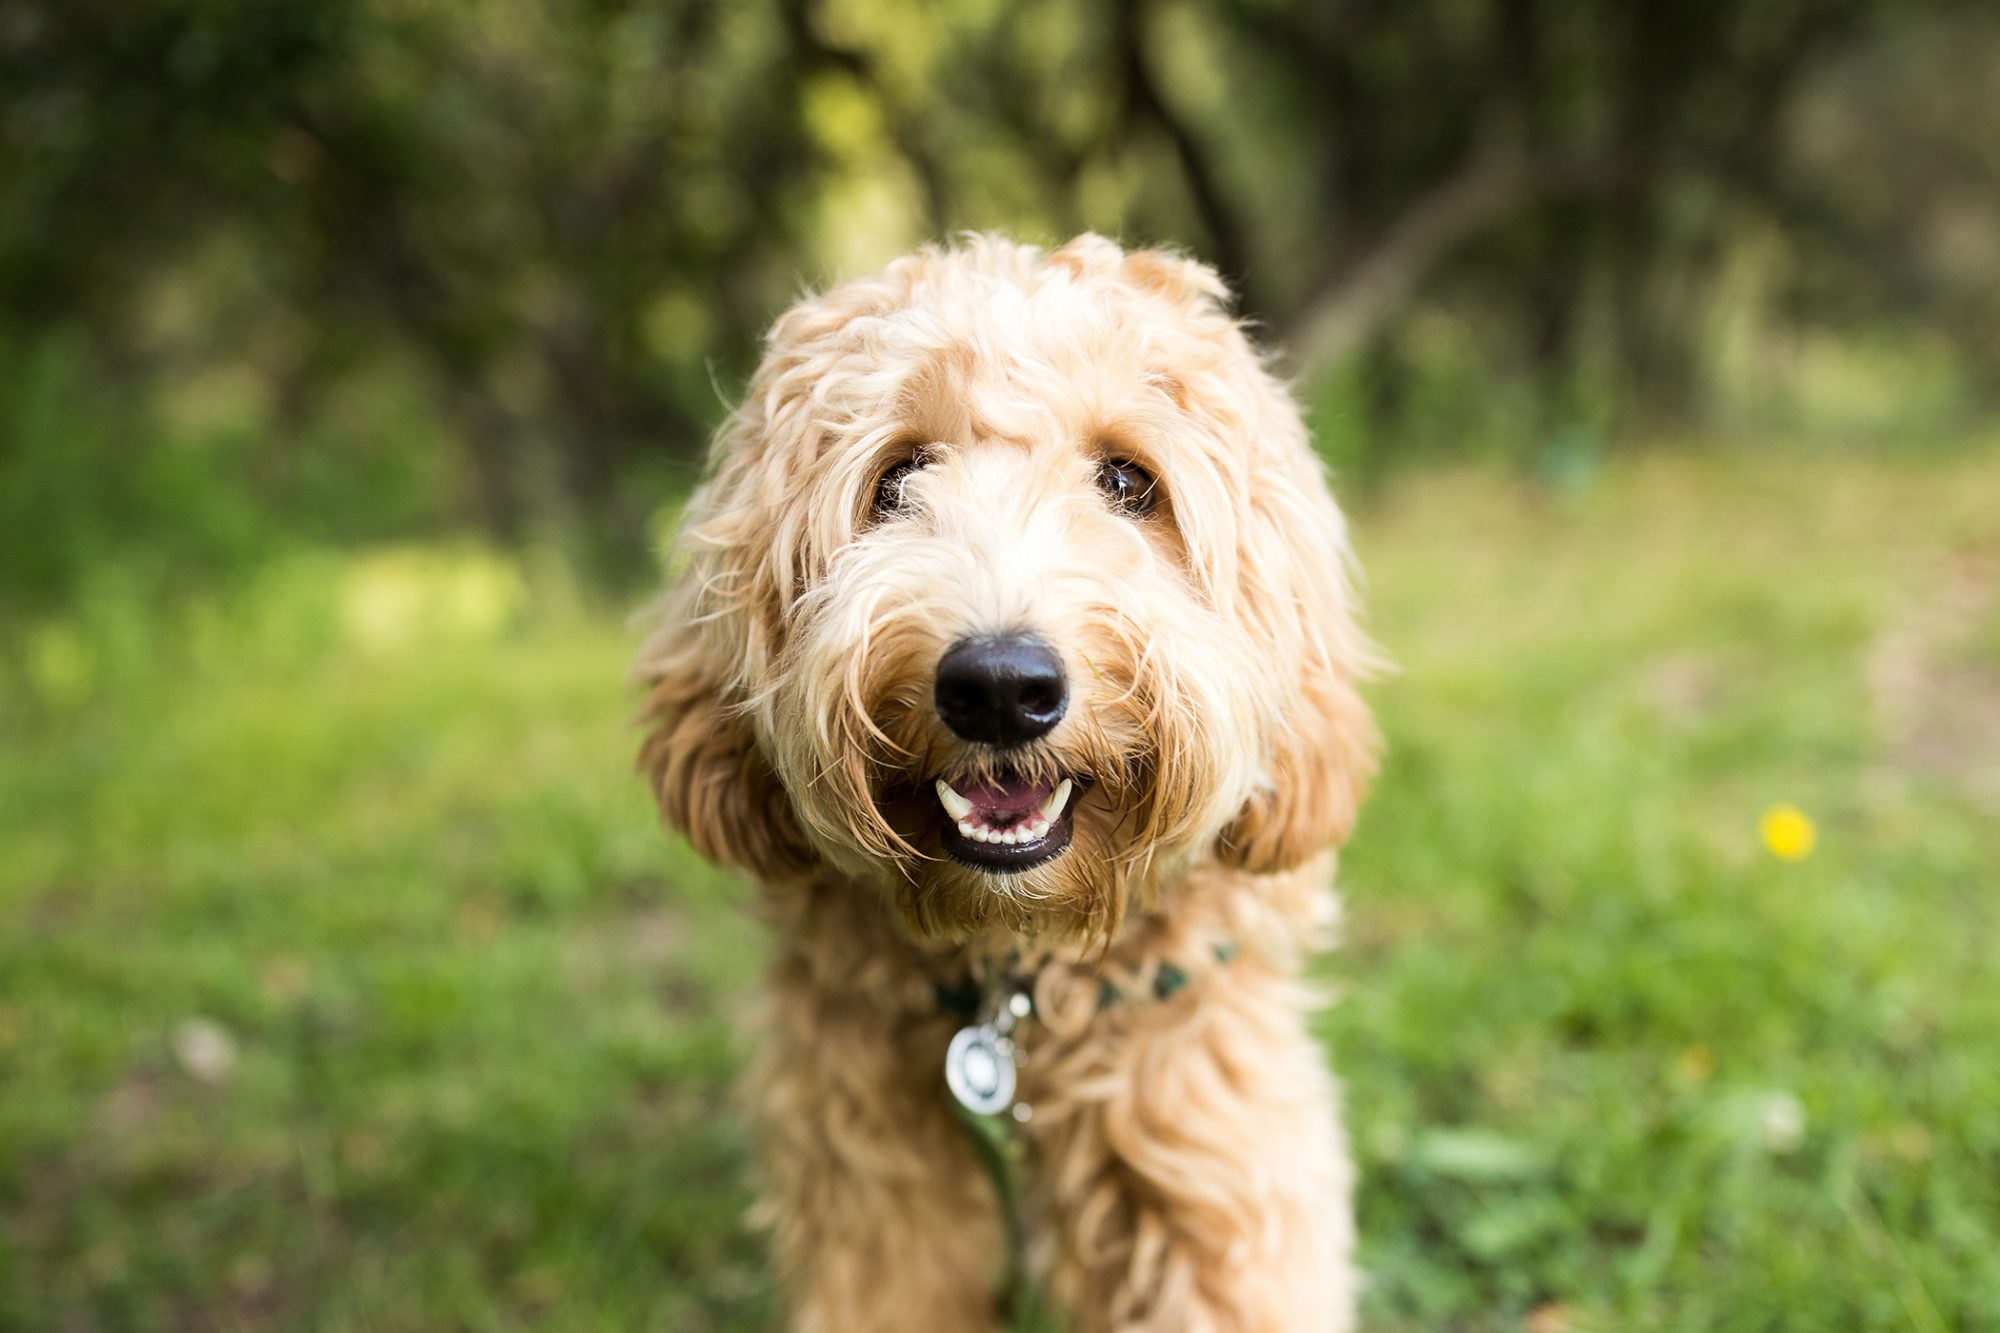 blonde labradoodle smiles at camera in grassy field